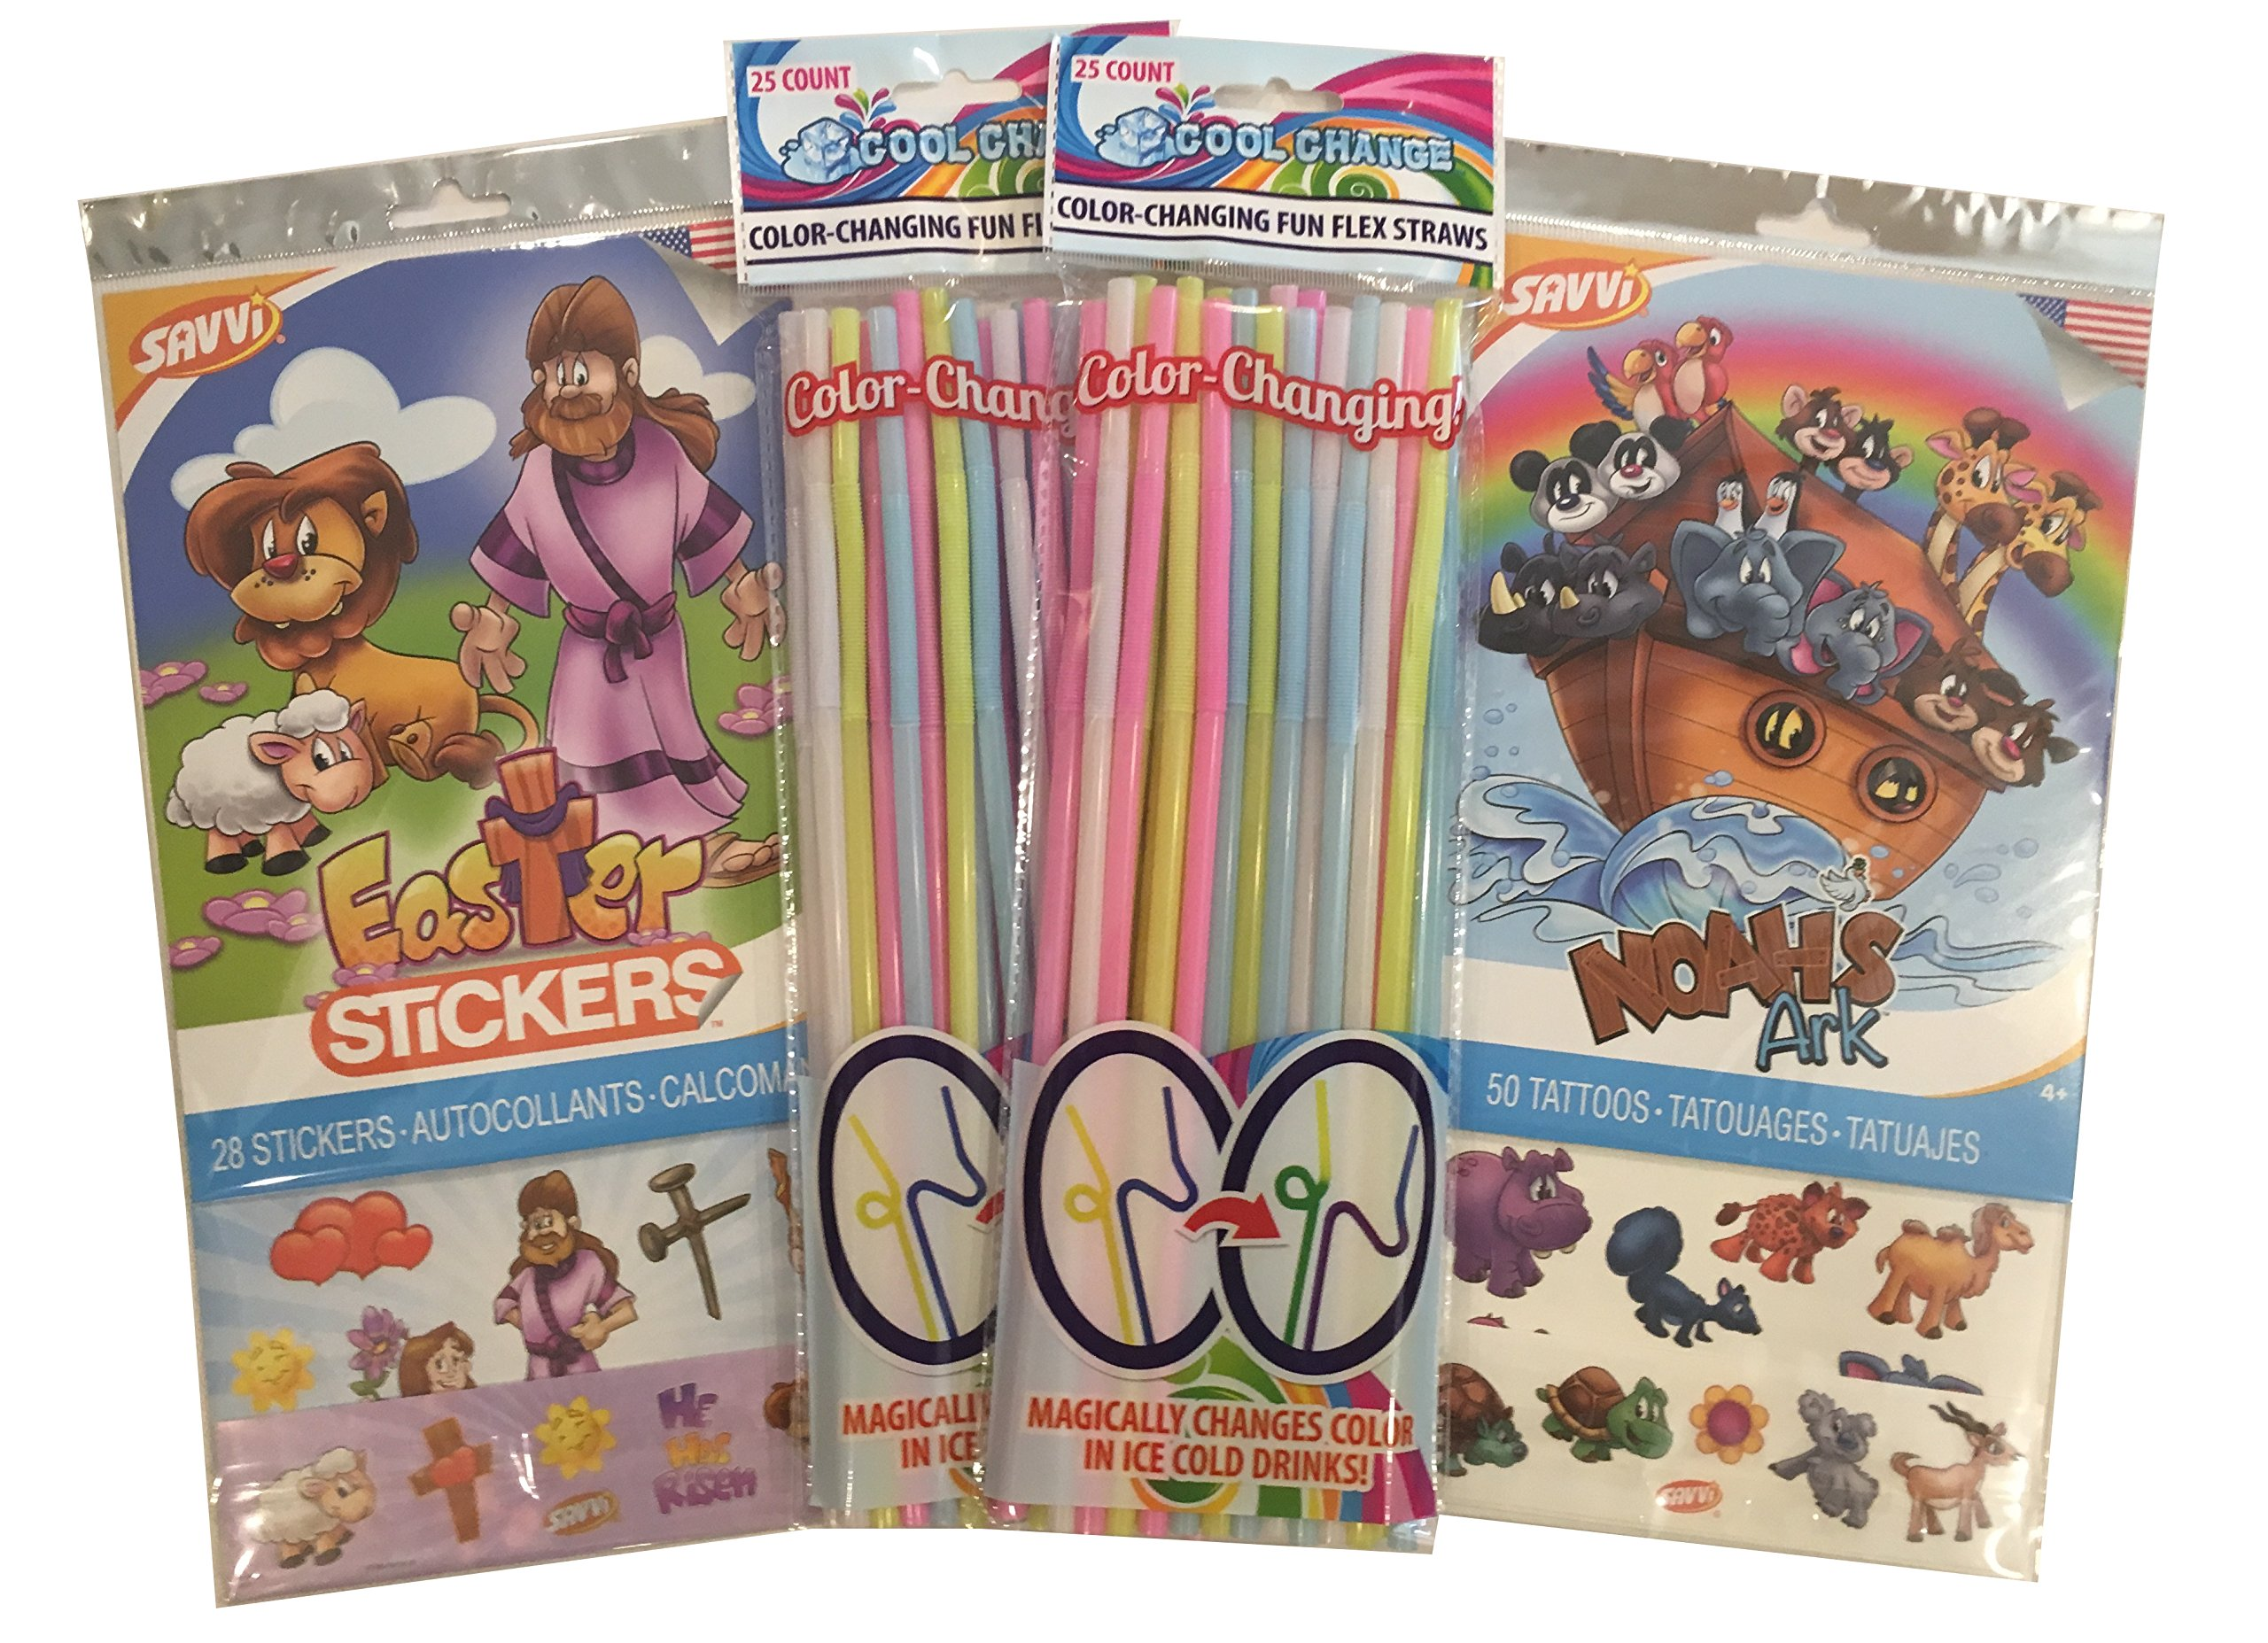 Religious Faith Based Theme Party Pack For Kids - Temporary Tattoos - Easter Stickers - Color Changing Straws for Girls and Boys by Mixed